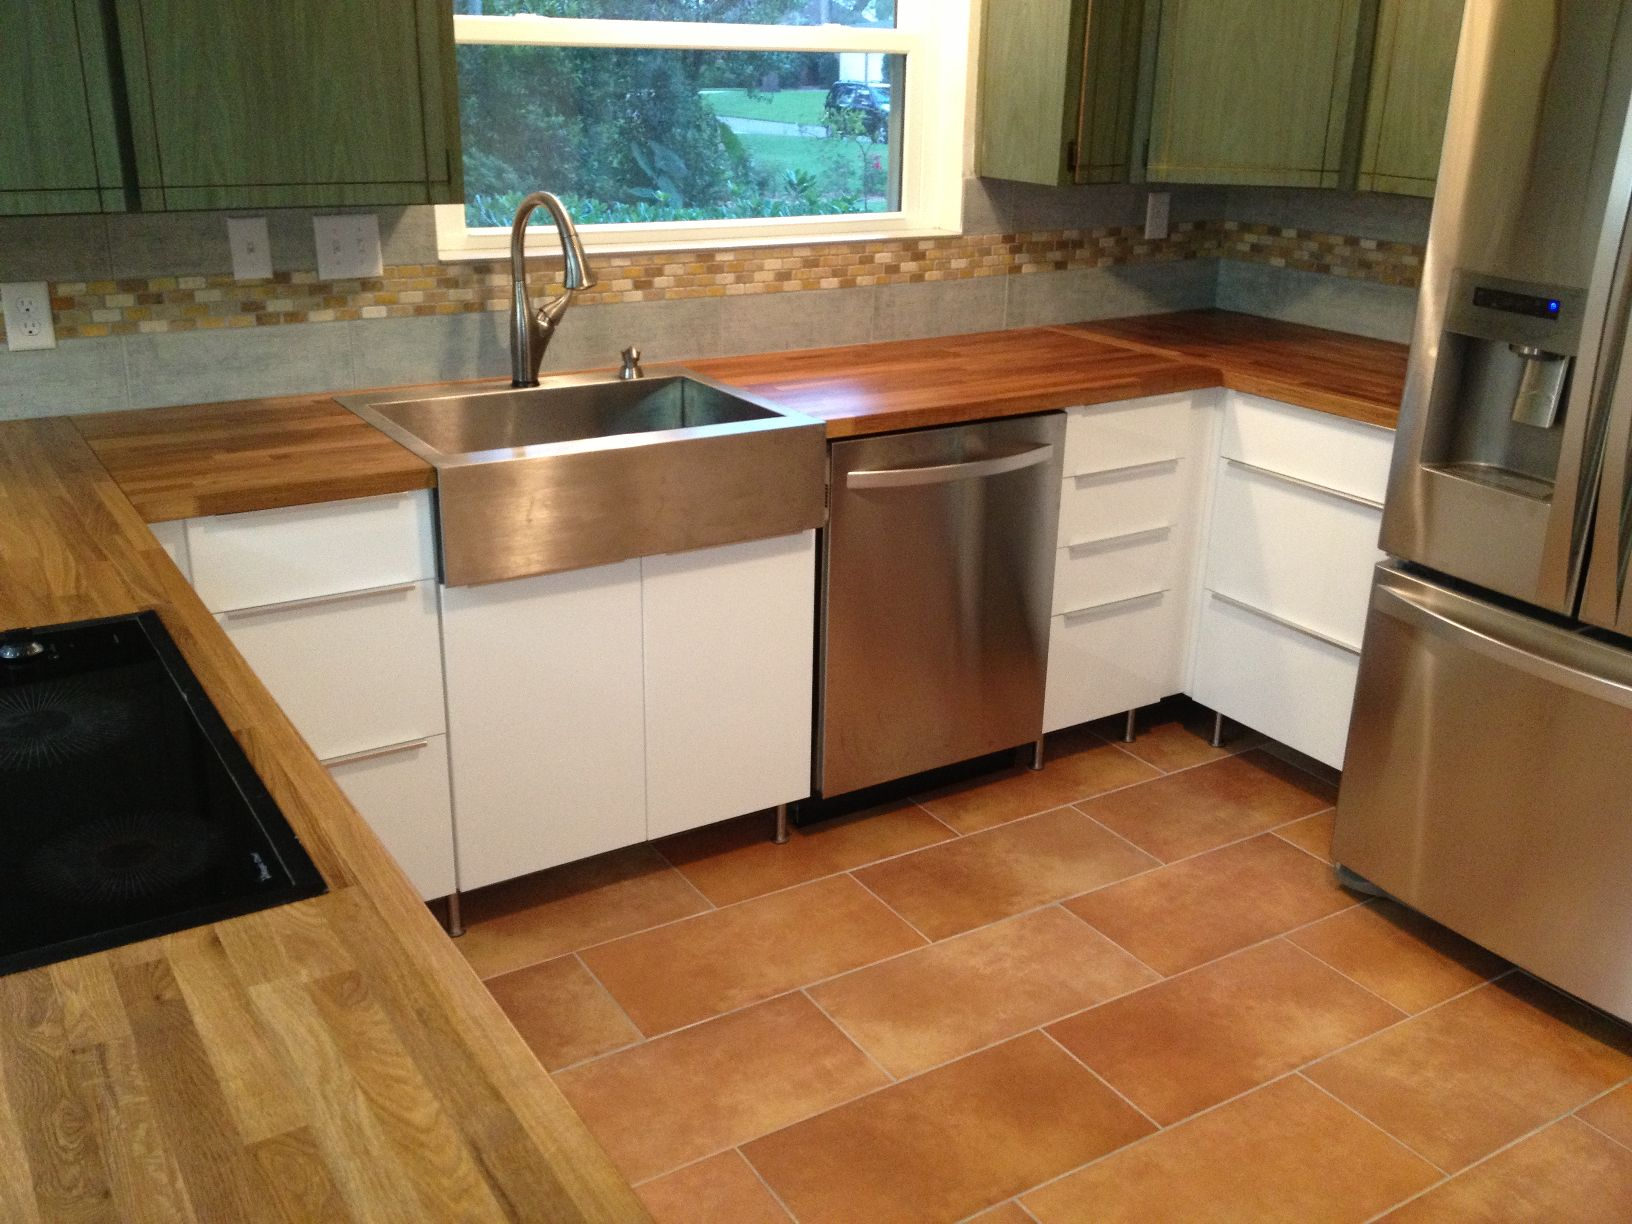 edward-julian-countertops-finished-with-odie's-04.jpg